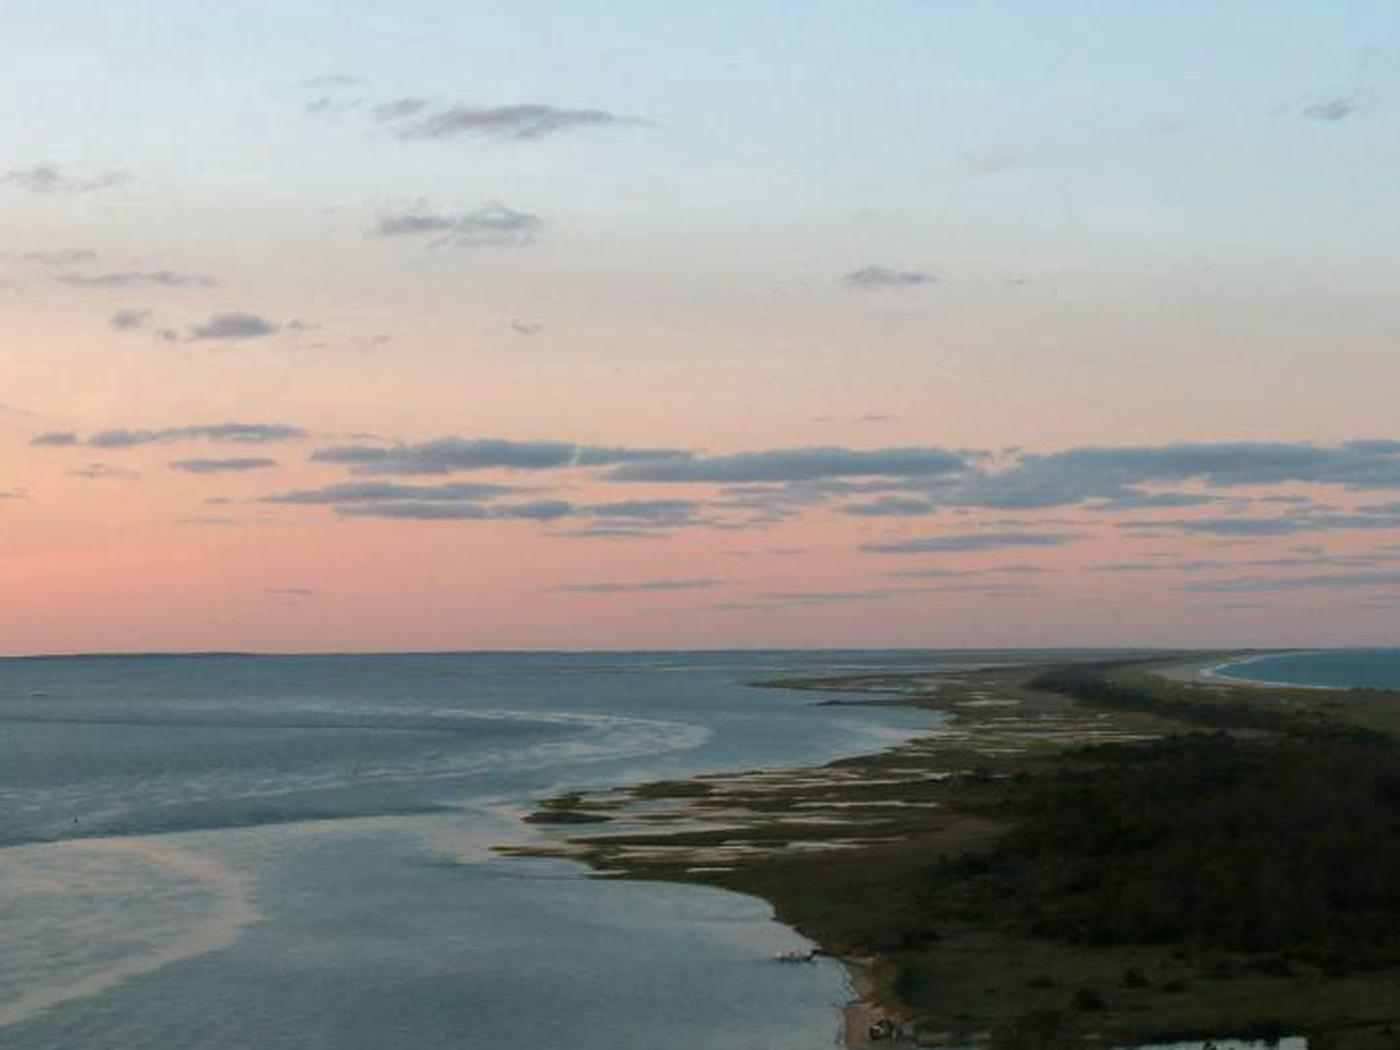 The View from atop the Cape Lookout LighthouseThe view from atop the Cape Lookout Lighthouse gallery, looking North.